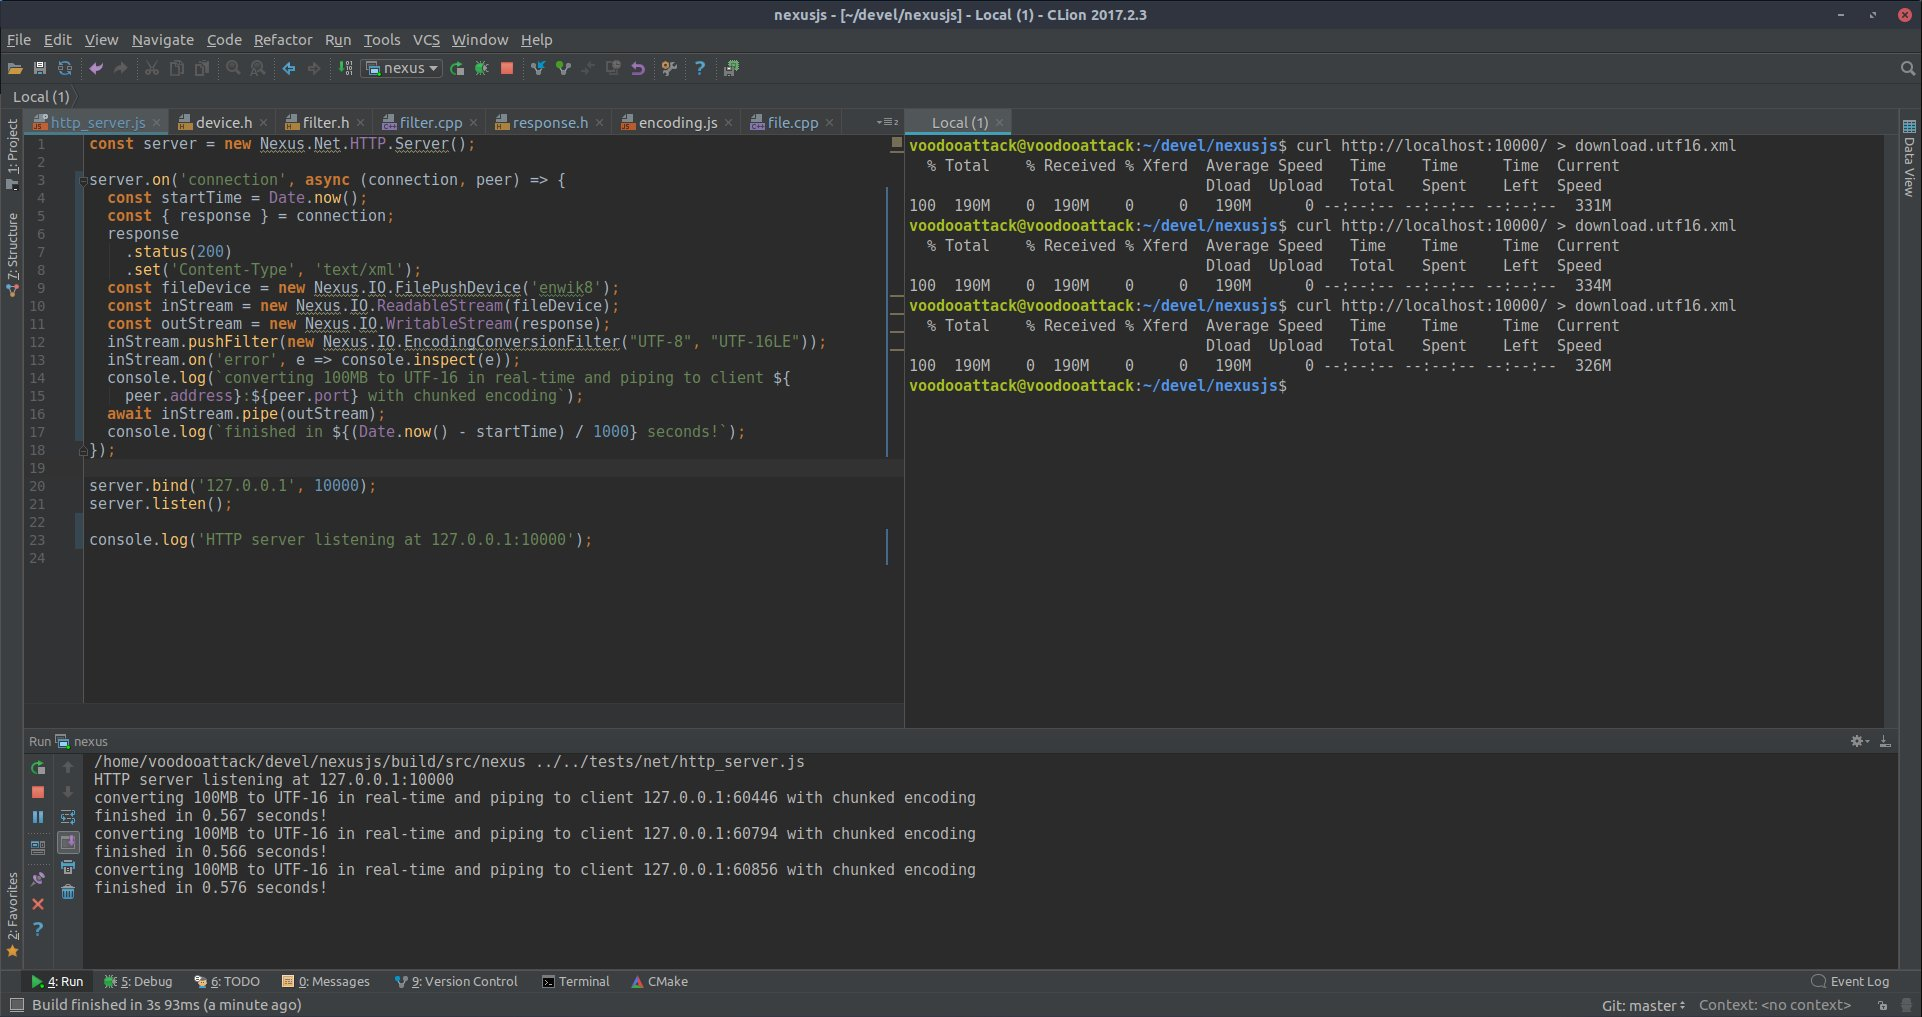 #devlog: Finally, true #multithreading in #javascript!  #NexusJS now supports live streaming using chunked encoding. Promises run on all #CPU cores.  🔥  This #code turns 100MB of UTF8 into UTF16  on the wire and lets the client download it as soon as chunks are converted, live! https://t.co/CFrNuFc20I